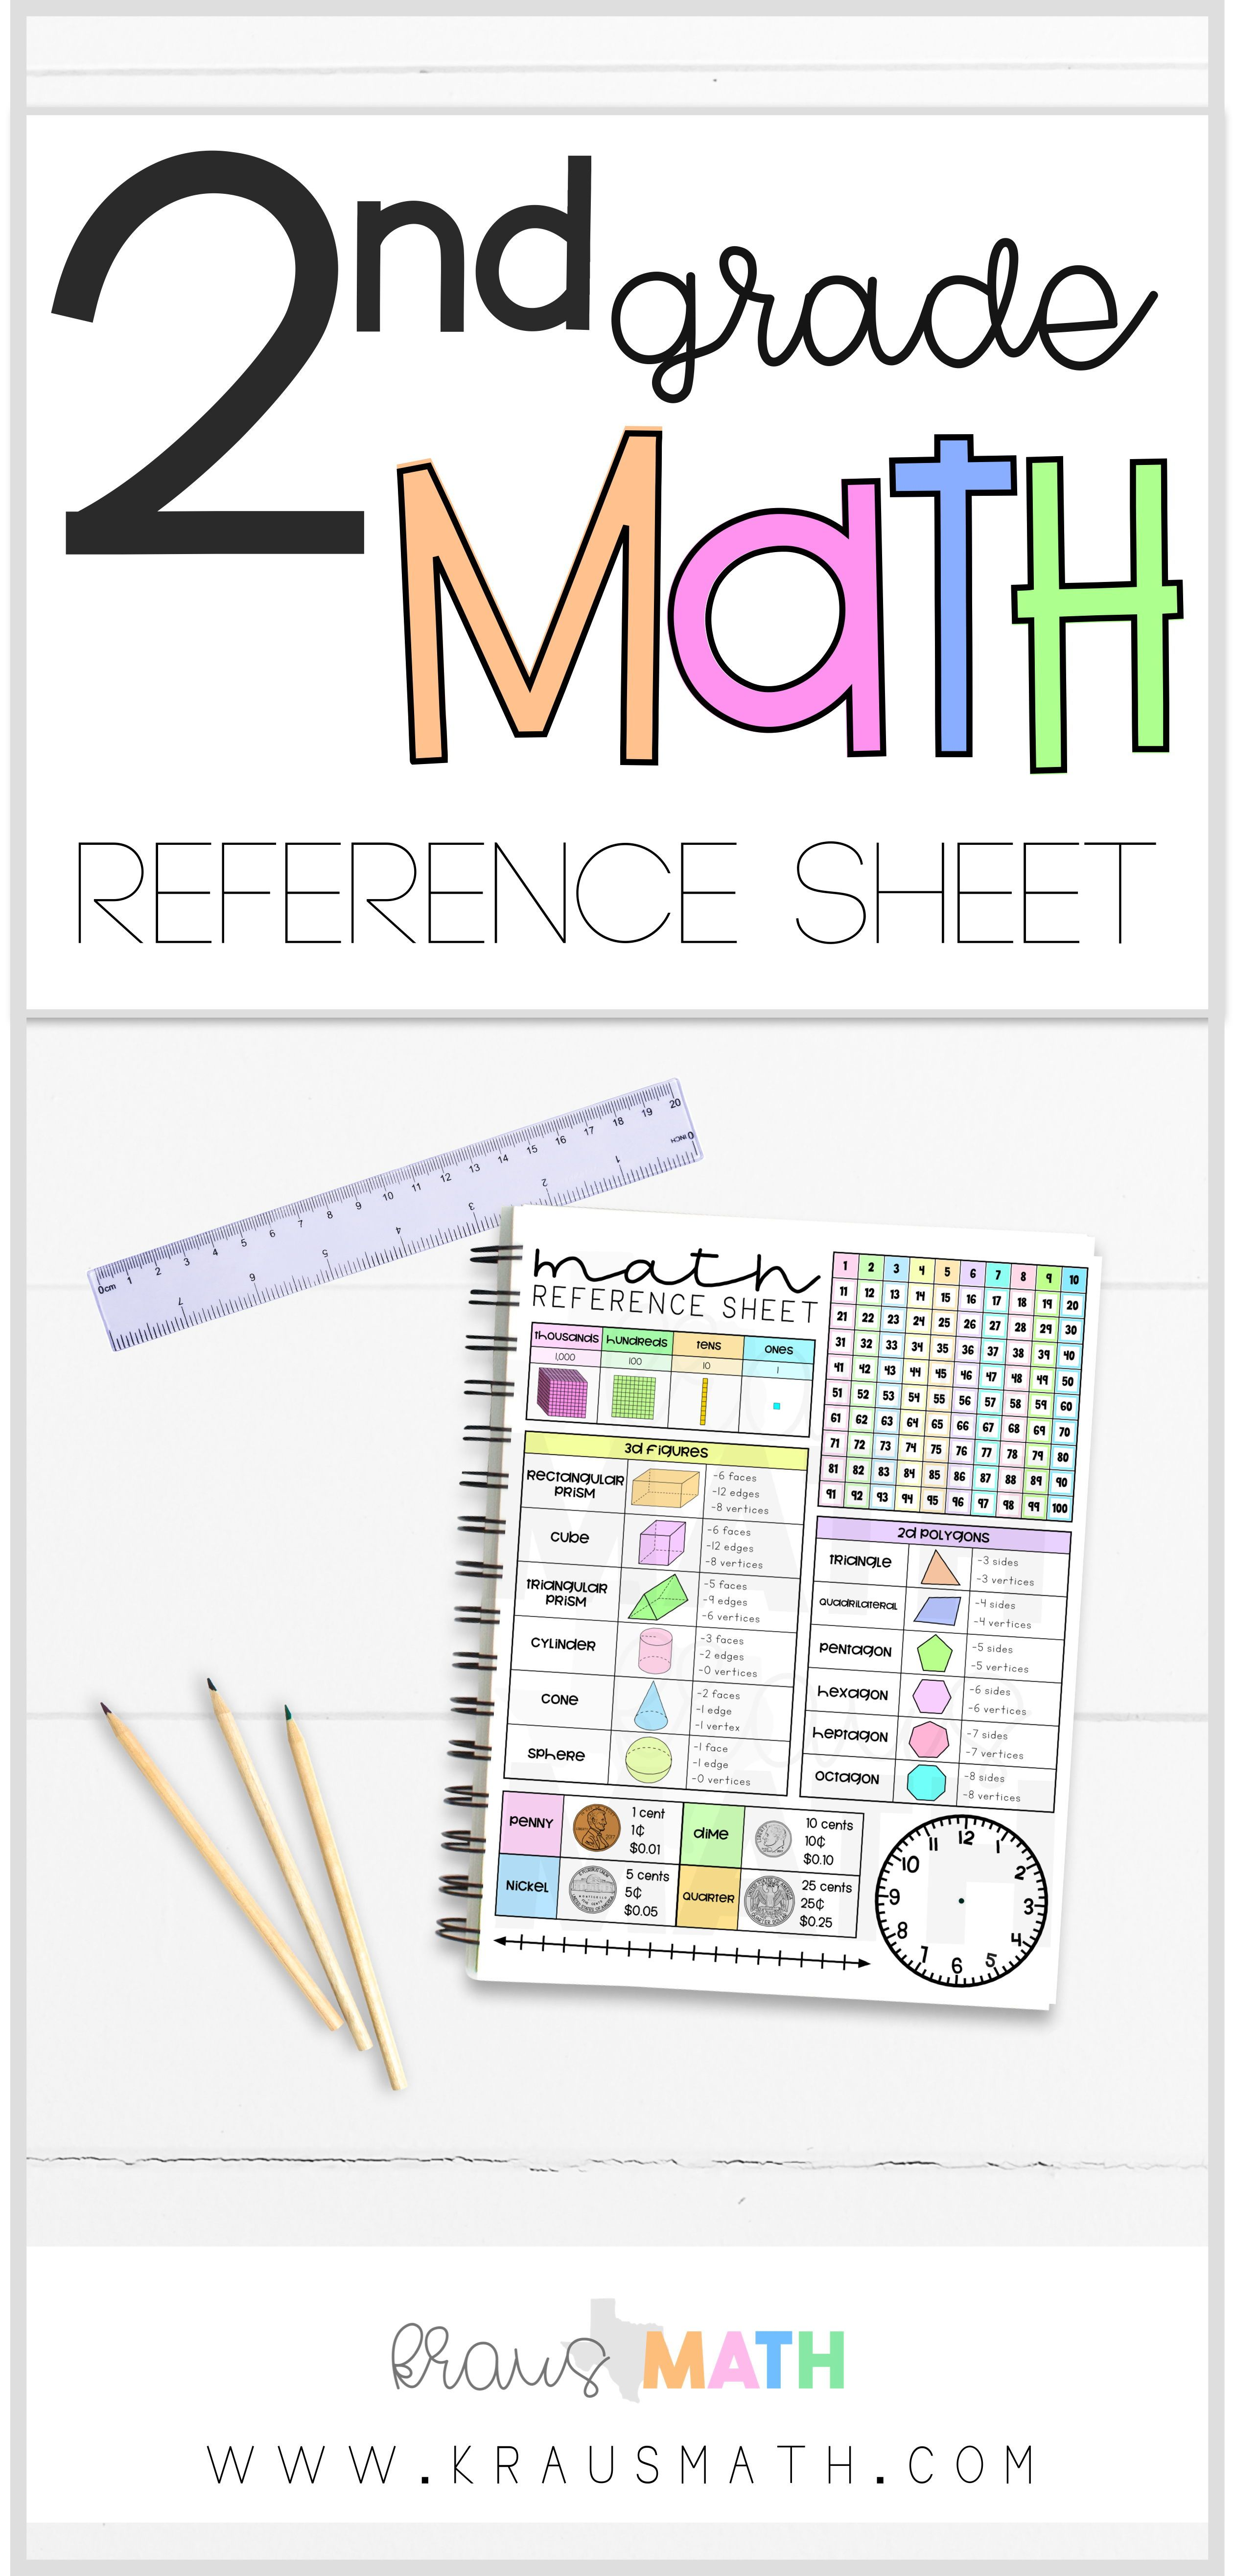 small resolution of 2nd Grade Math Reference Sheet   Kraus Math   Math reference sheet